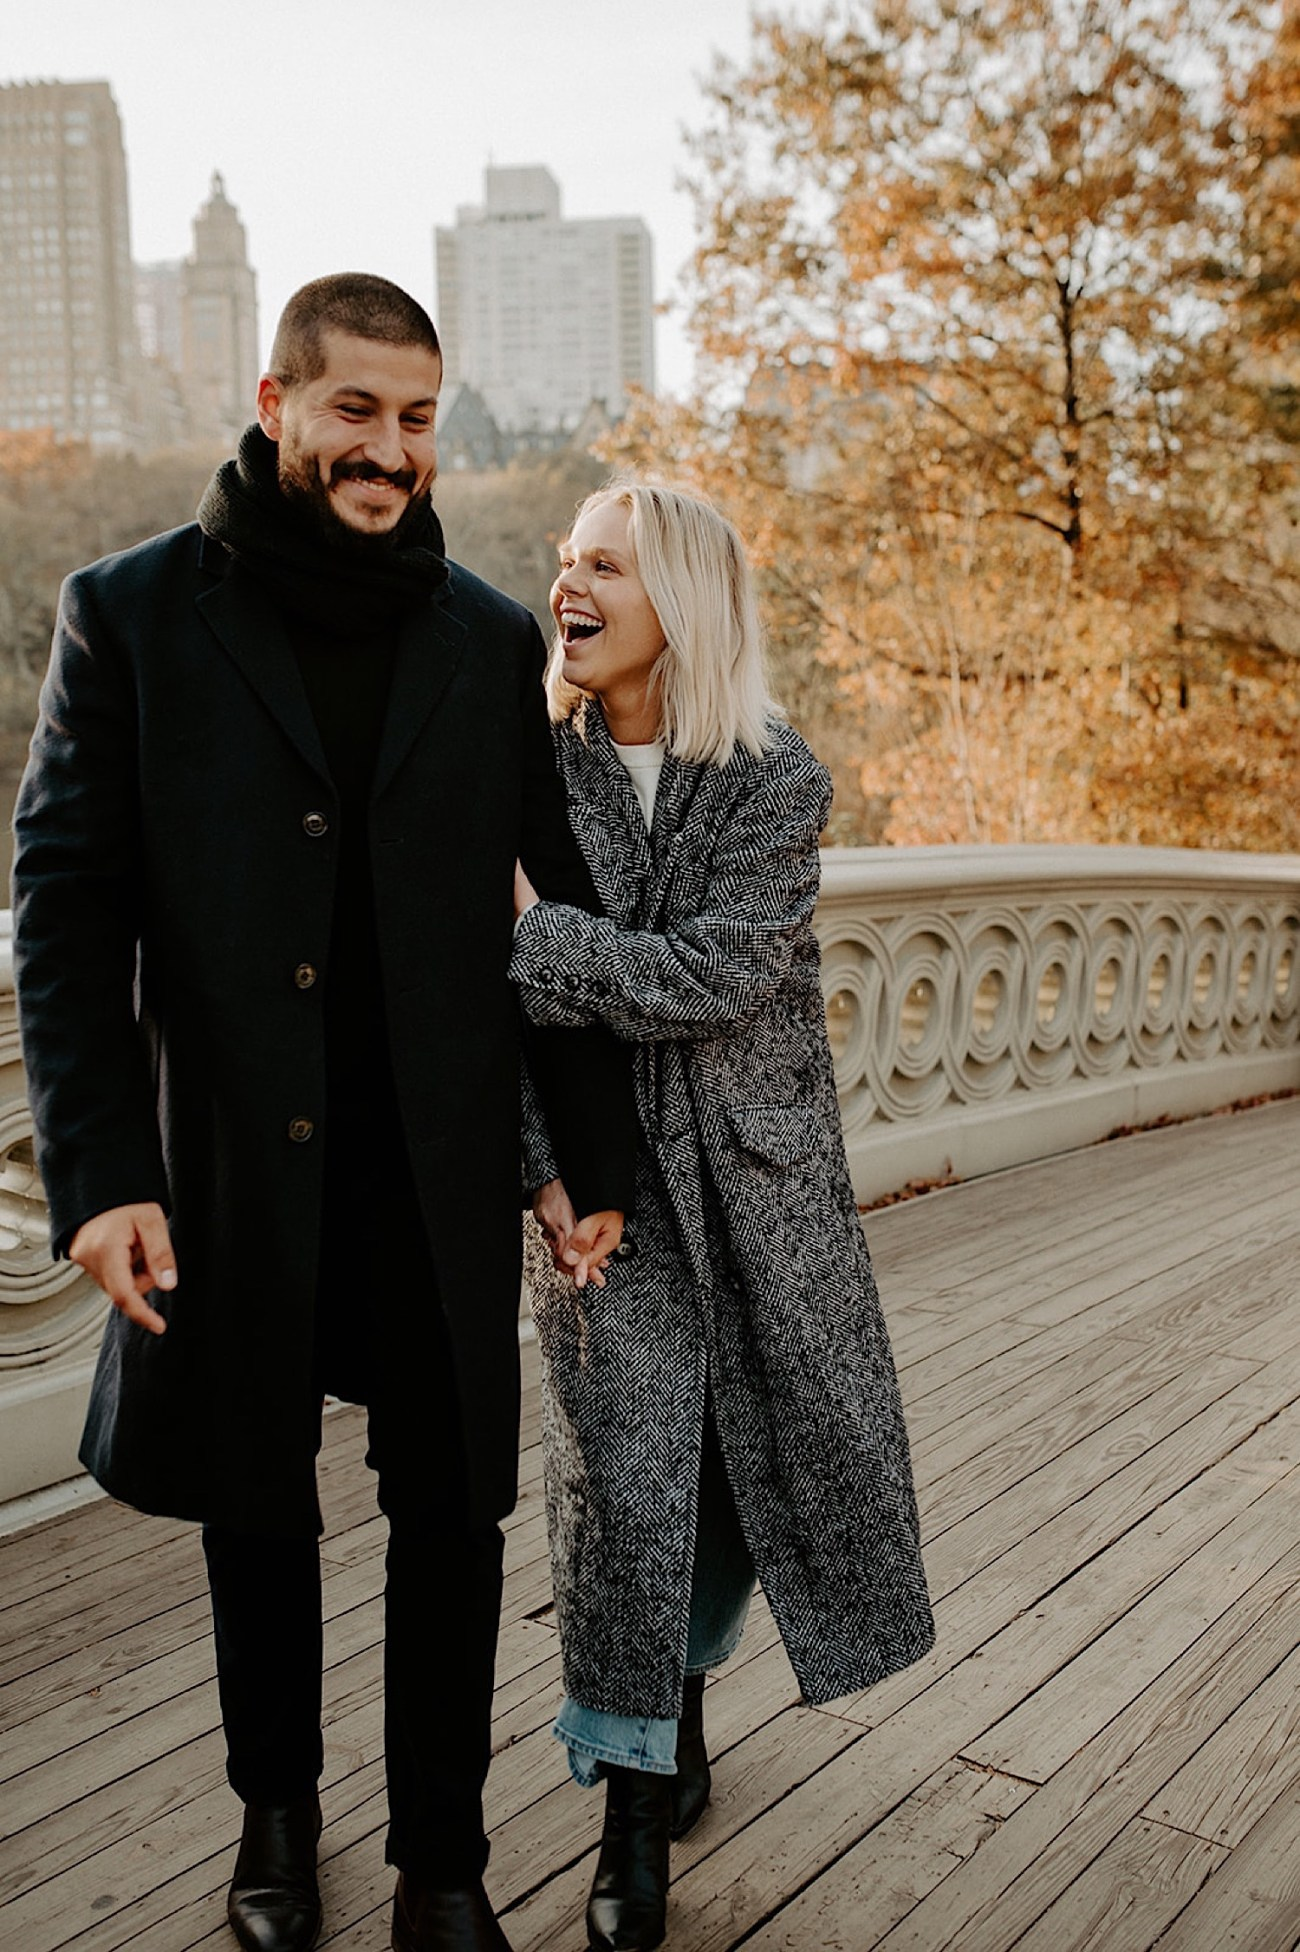 049 Central Park Enagement Photos Bethesda Terrace Engagement Photos New York Wedding Photographer